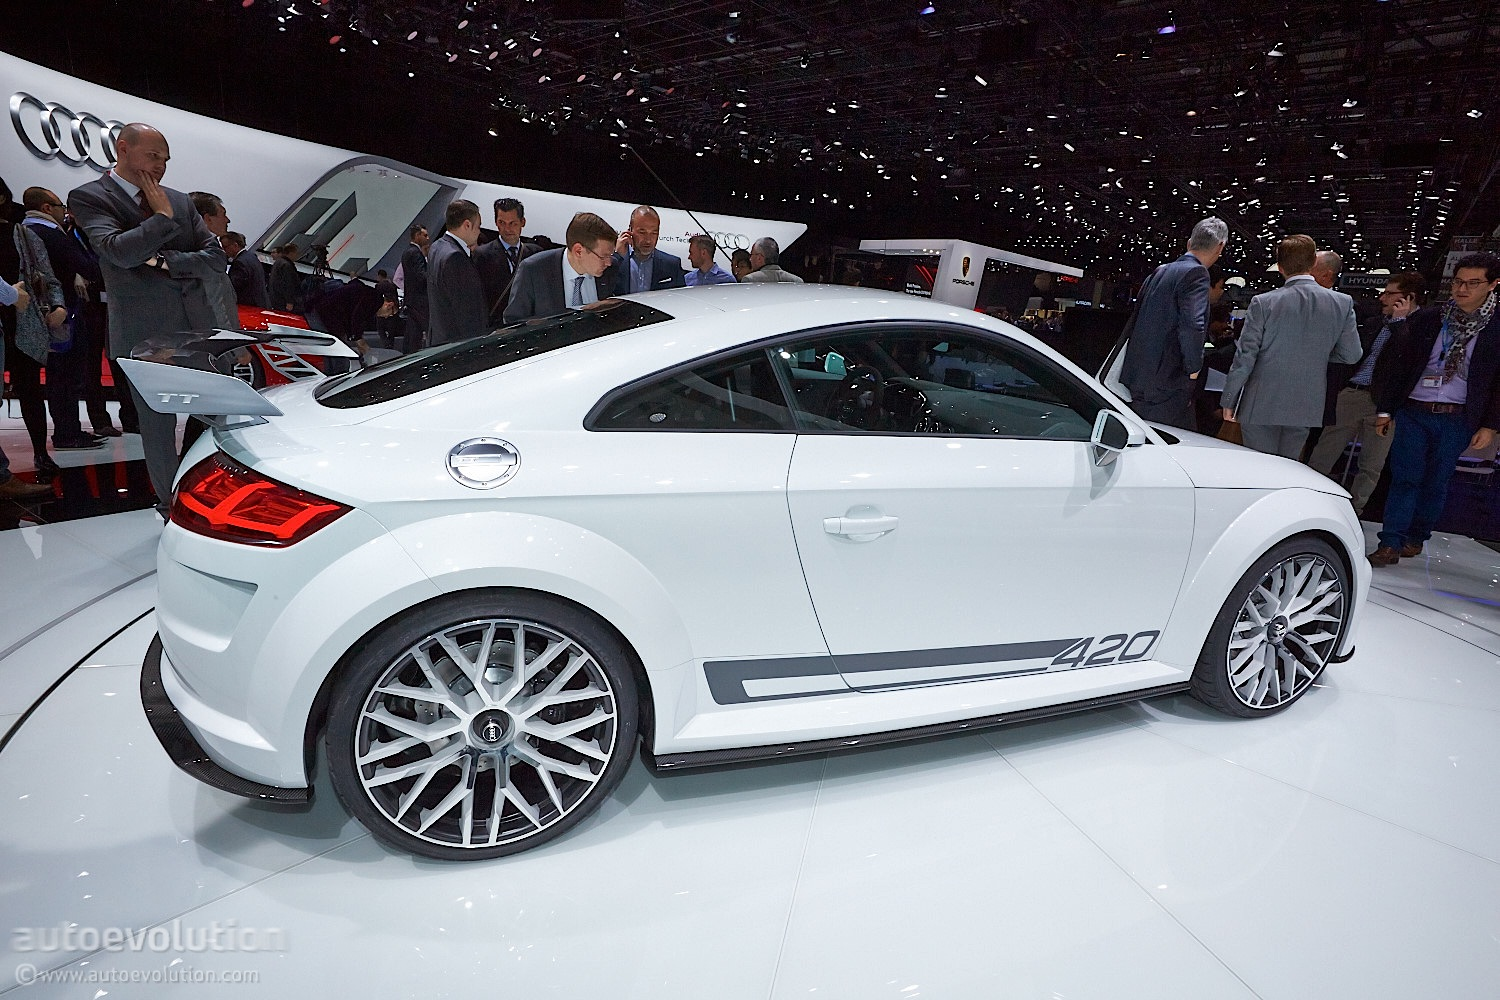 audi tt quattro sport packs 420 hp of nurburgring lapping. Black Bedroom Furniture Sets. Home Design Ideas